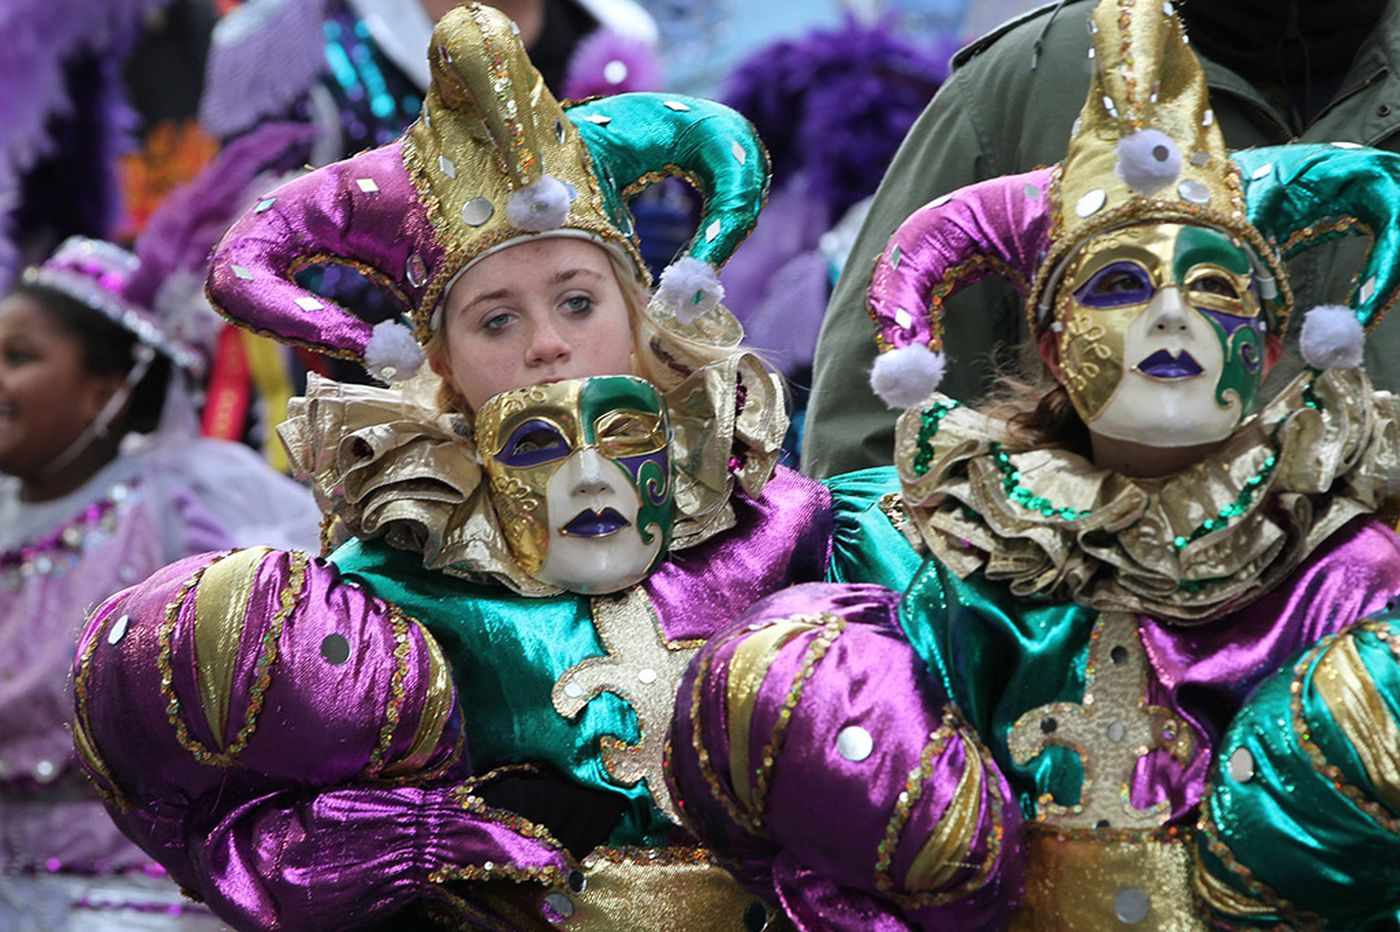 A second strut for Mummers - in Manayunk for Mardi Gras